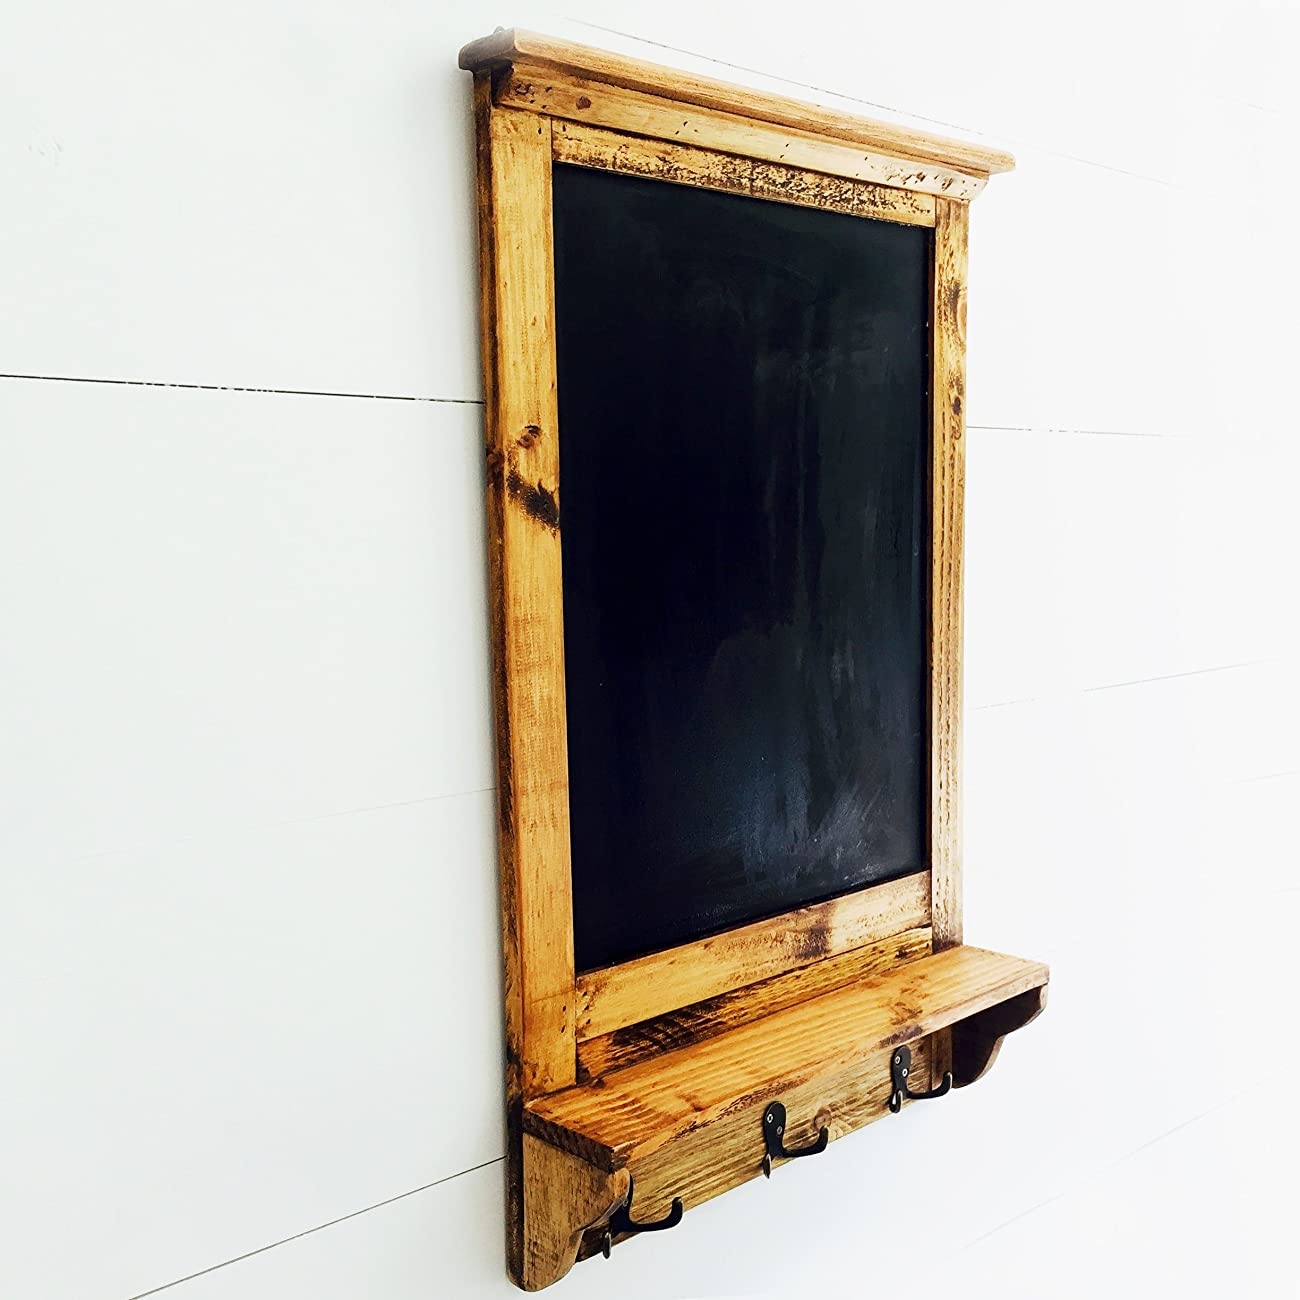 The Stockbridge Chalkboard with Shelf and Coat Hooks, Rustic Pine, Natural Color Wood with Vintage Style Distressed Finish, Brass Hardware, 3 7/8 D x 17 ¾ W x 28 ¼ H Inches, By Whole House Worlds 3